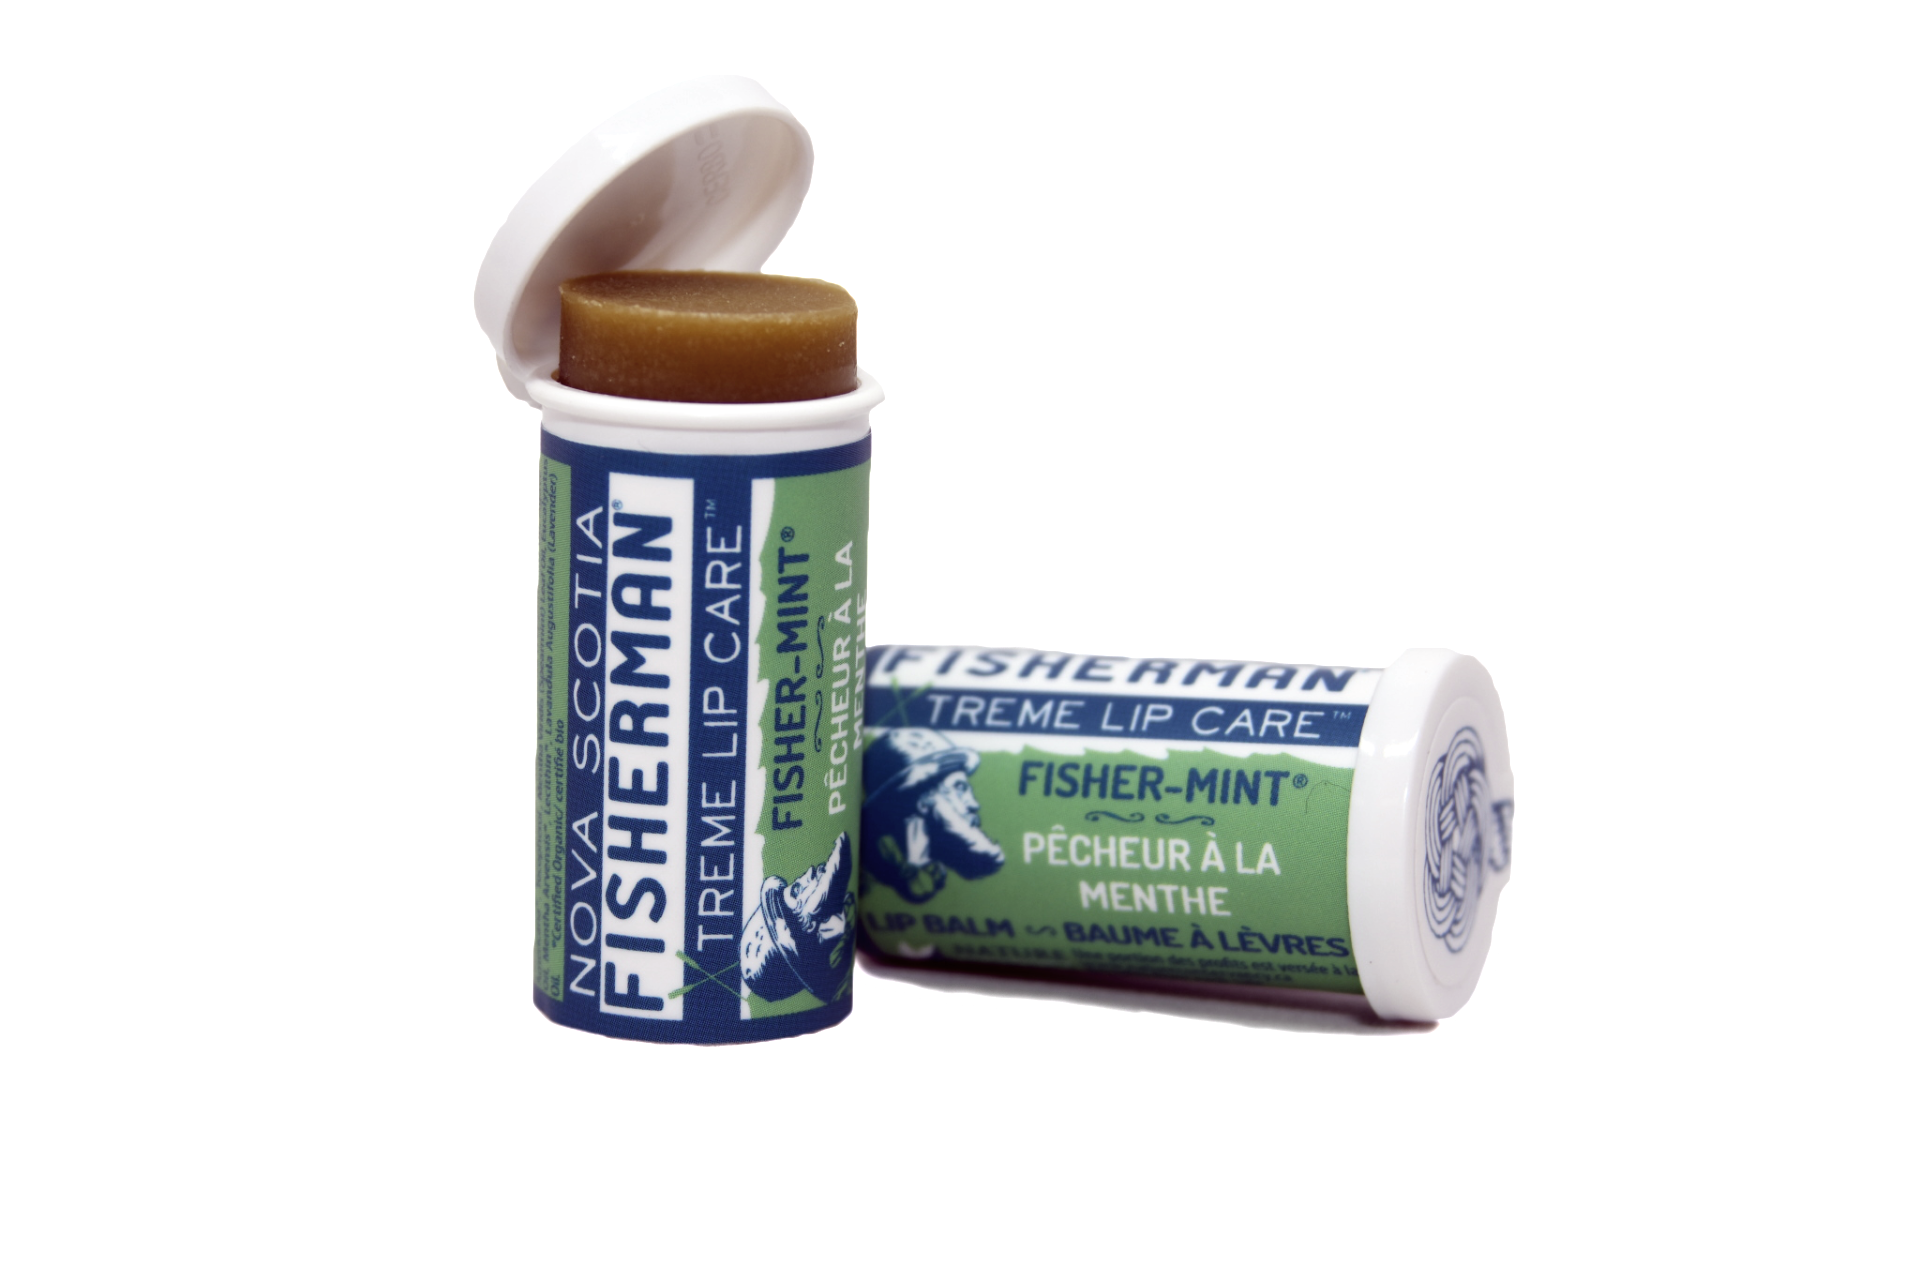 Lip Balm - Fishermint - Nova Scotia Fisherman Sea Kelp Skincare